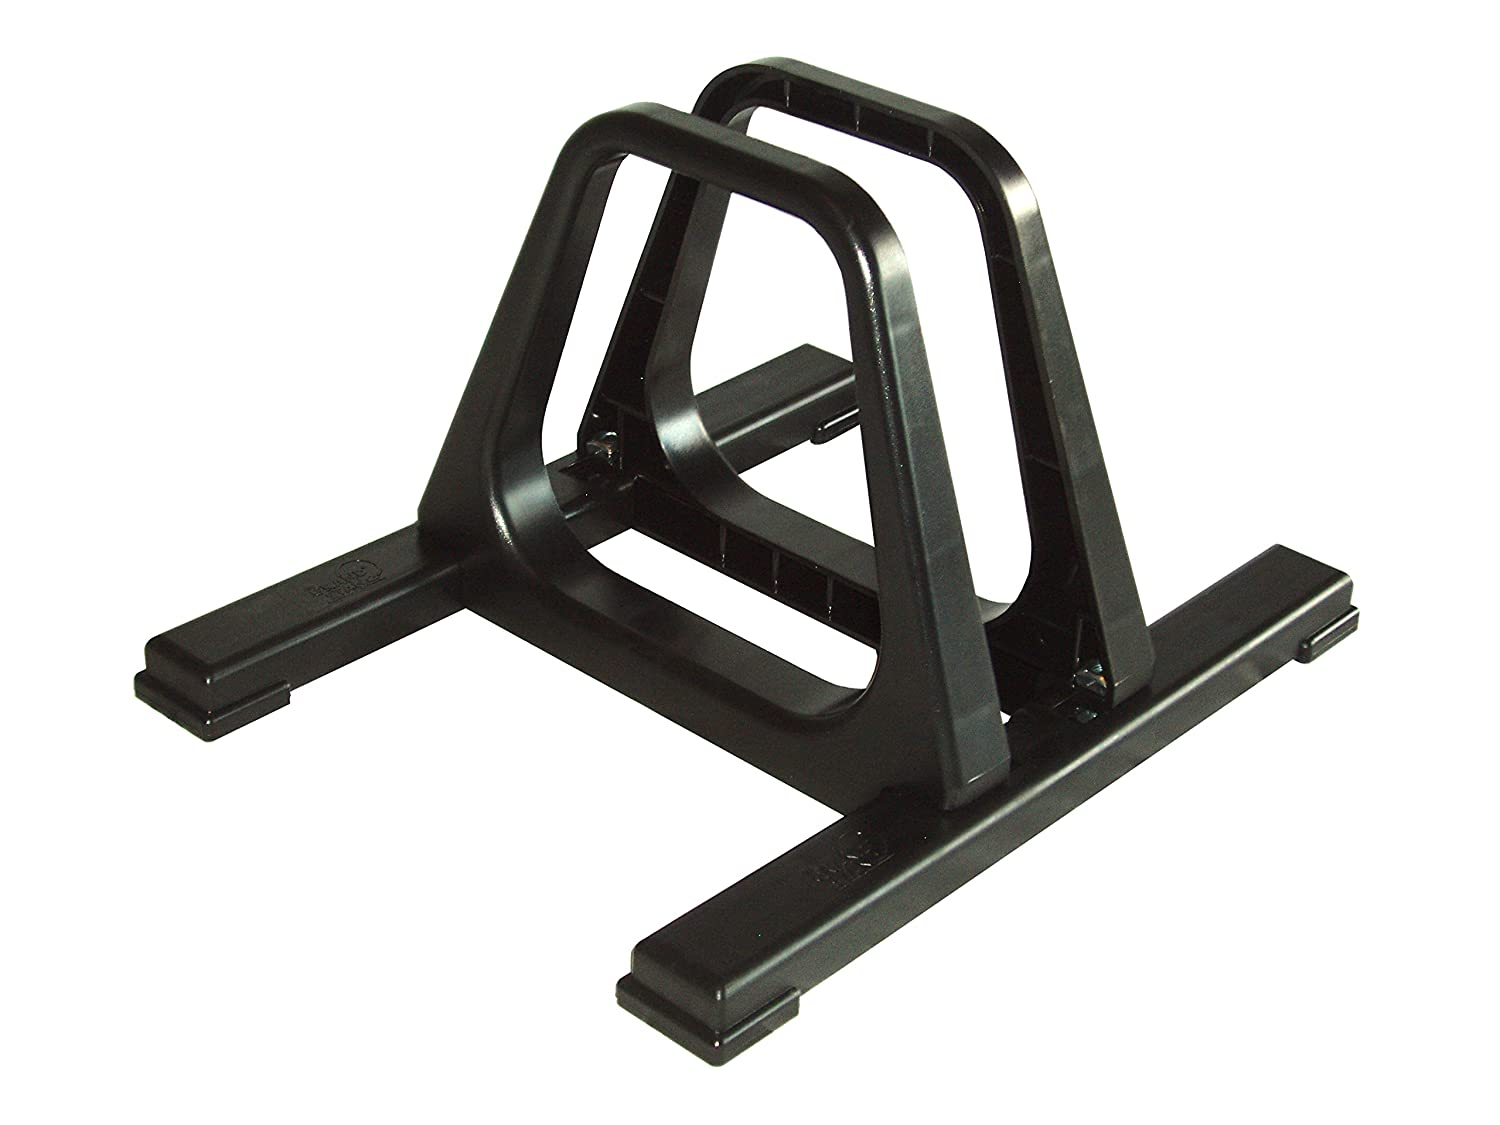 gearup The Grand Stand Single Bike Floor Stand Black Gear Up Inc 37010